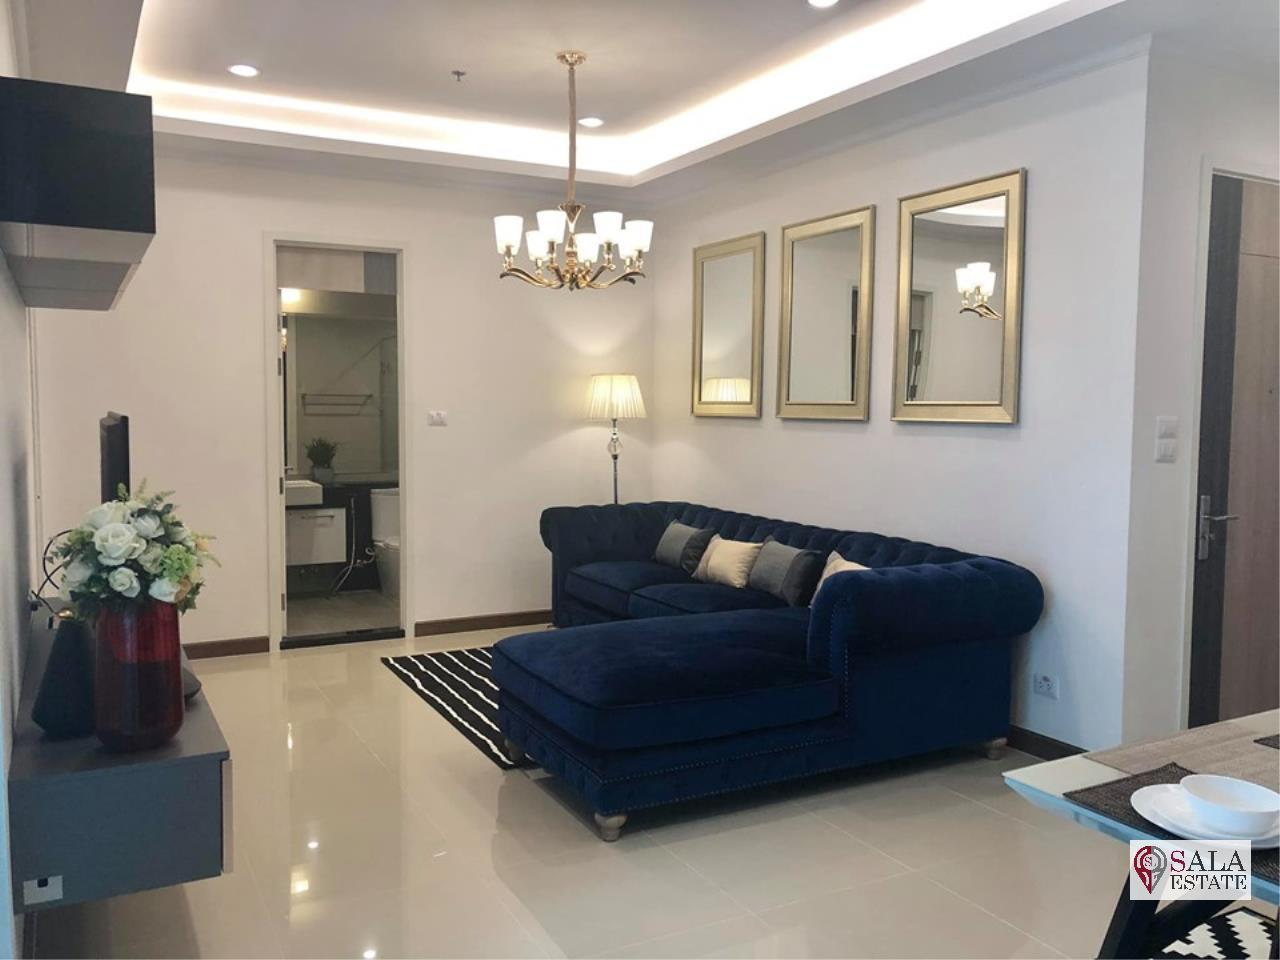 SALA ESTATE Agency's (FOR RENT) SUPALAI ELITE PHAYATHAI – BTS PHAYA THAI,70 SQM 1 BEDROOM 1 BATHROOM, FULLY FERNISHED, CITY VIEW 8